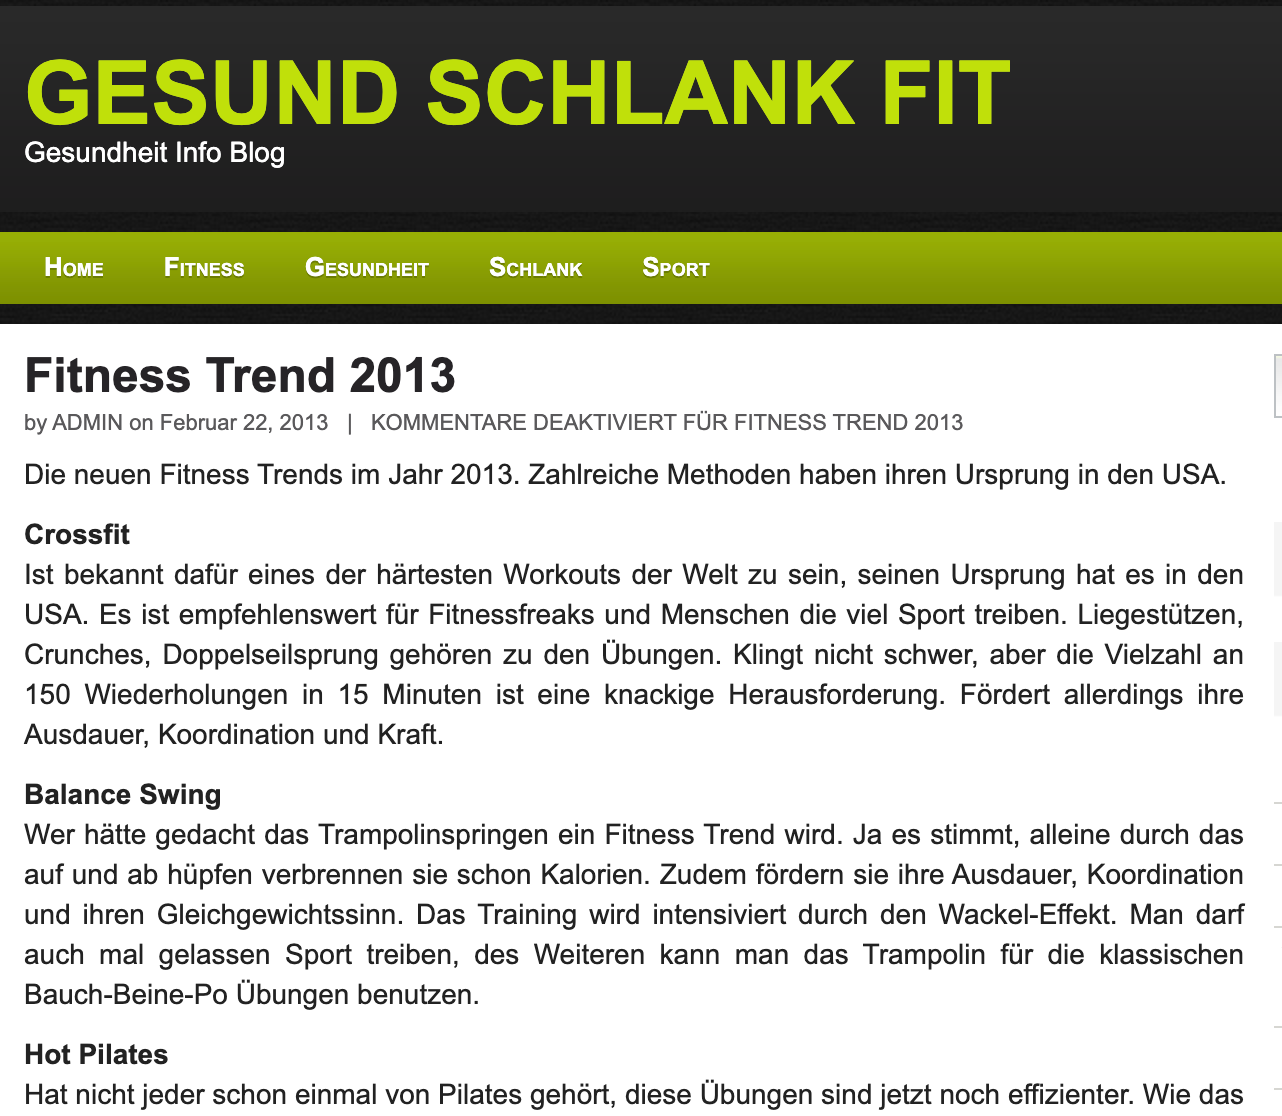 GESUND SCHLANK FIT, FEBRUARY 22, 2013: Fitness Trend 2013